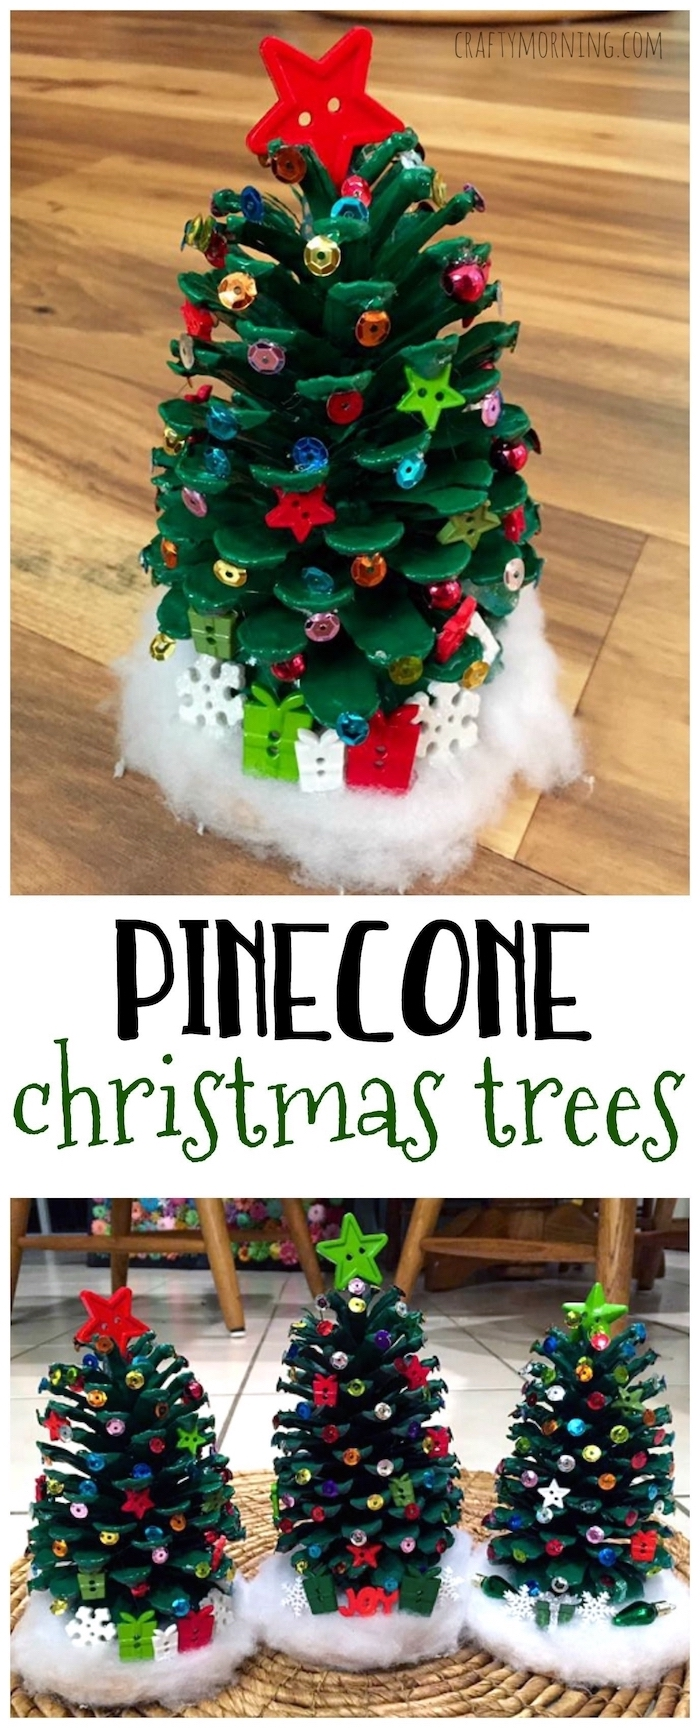 pinecone christmas trees, diy christmas ornaments for kids, pinecone painted green, beads glued to it